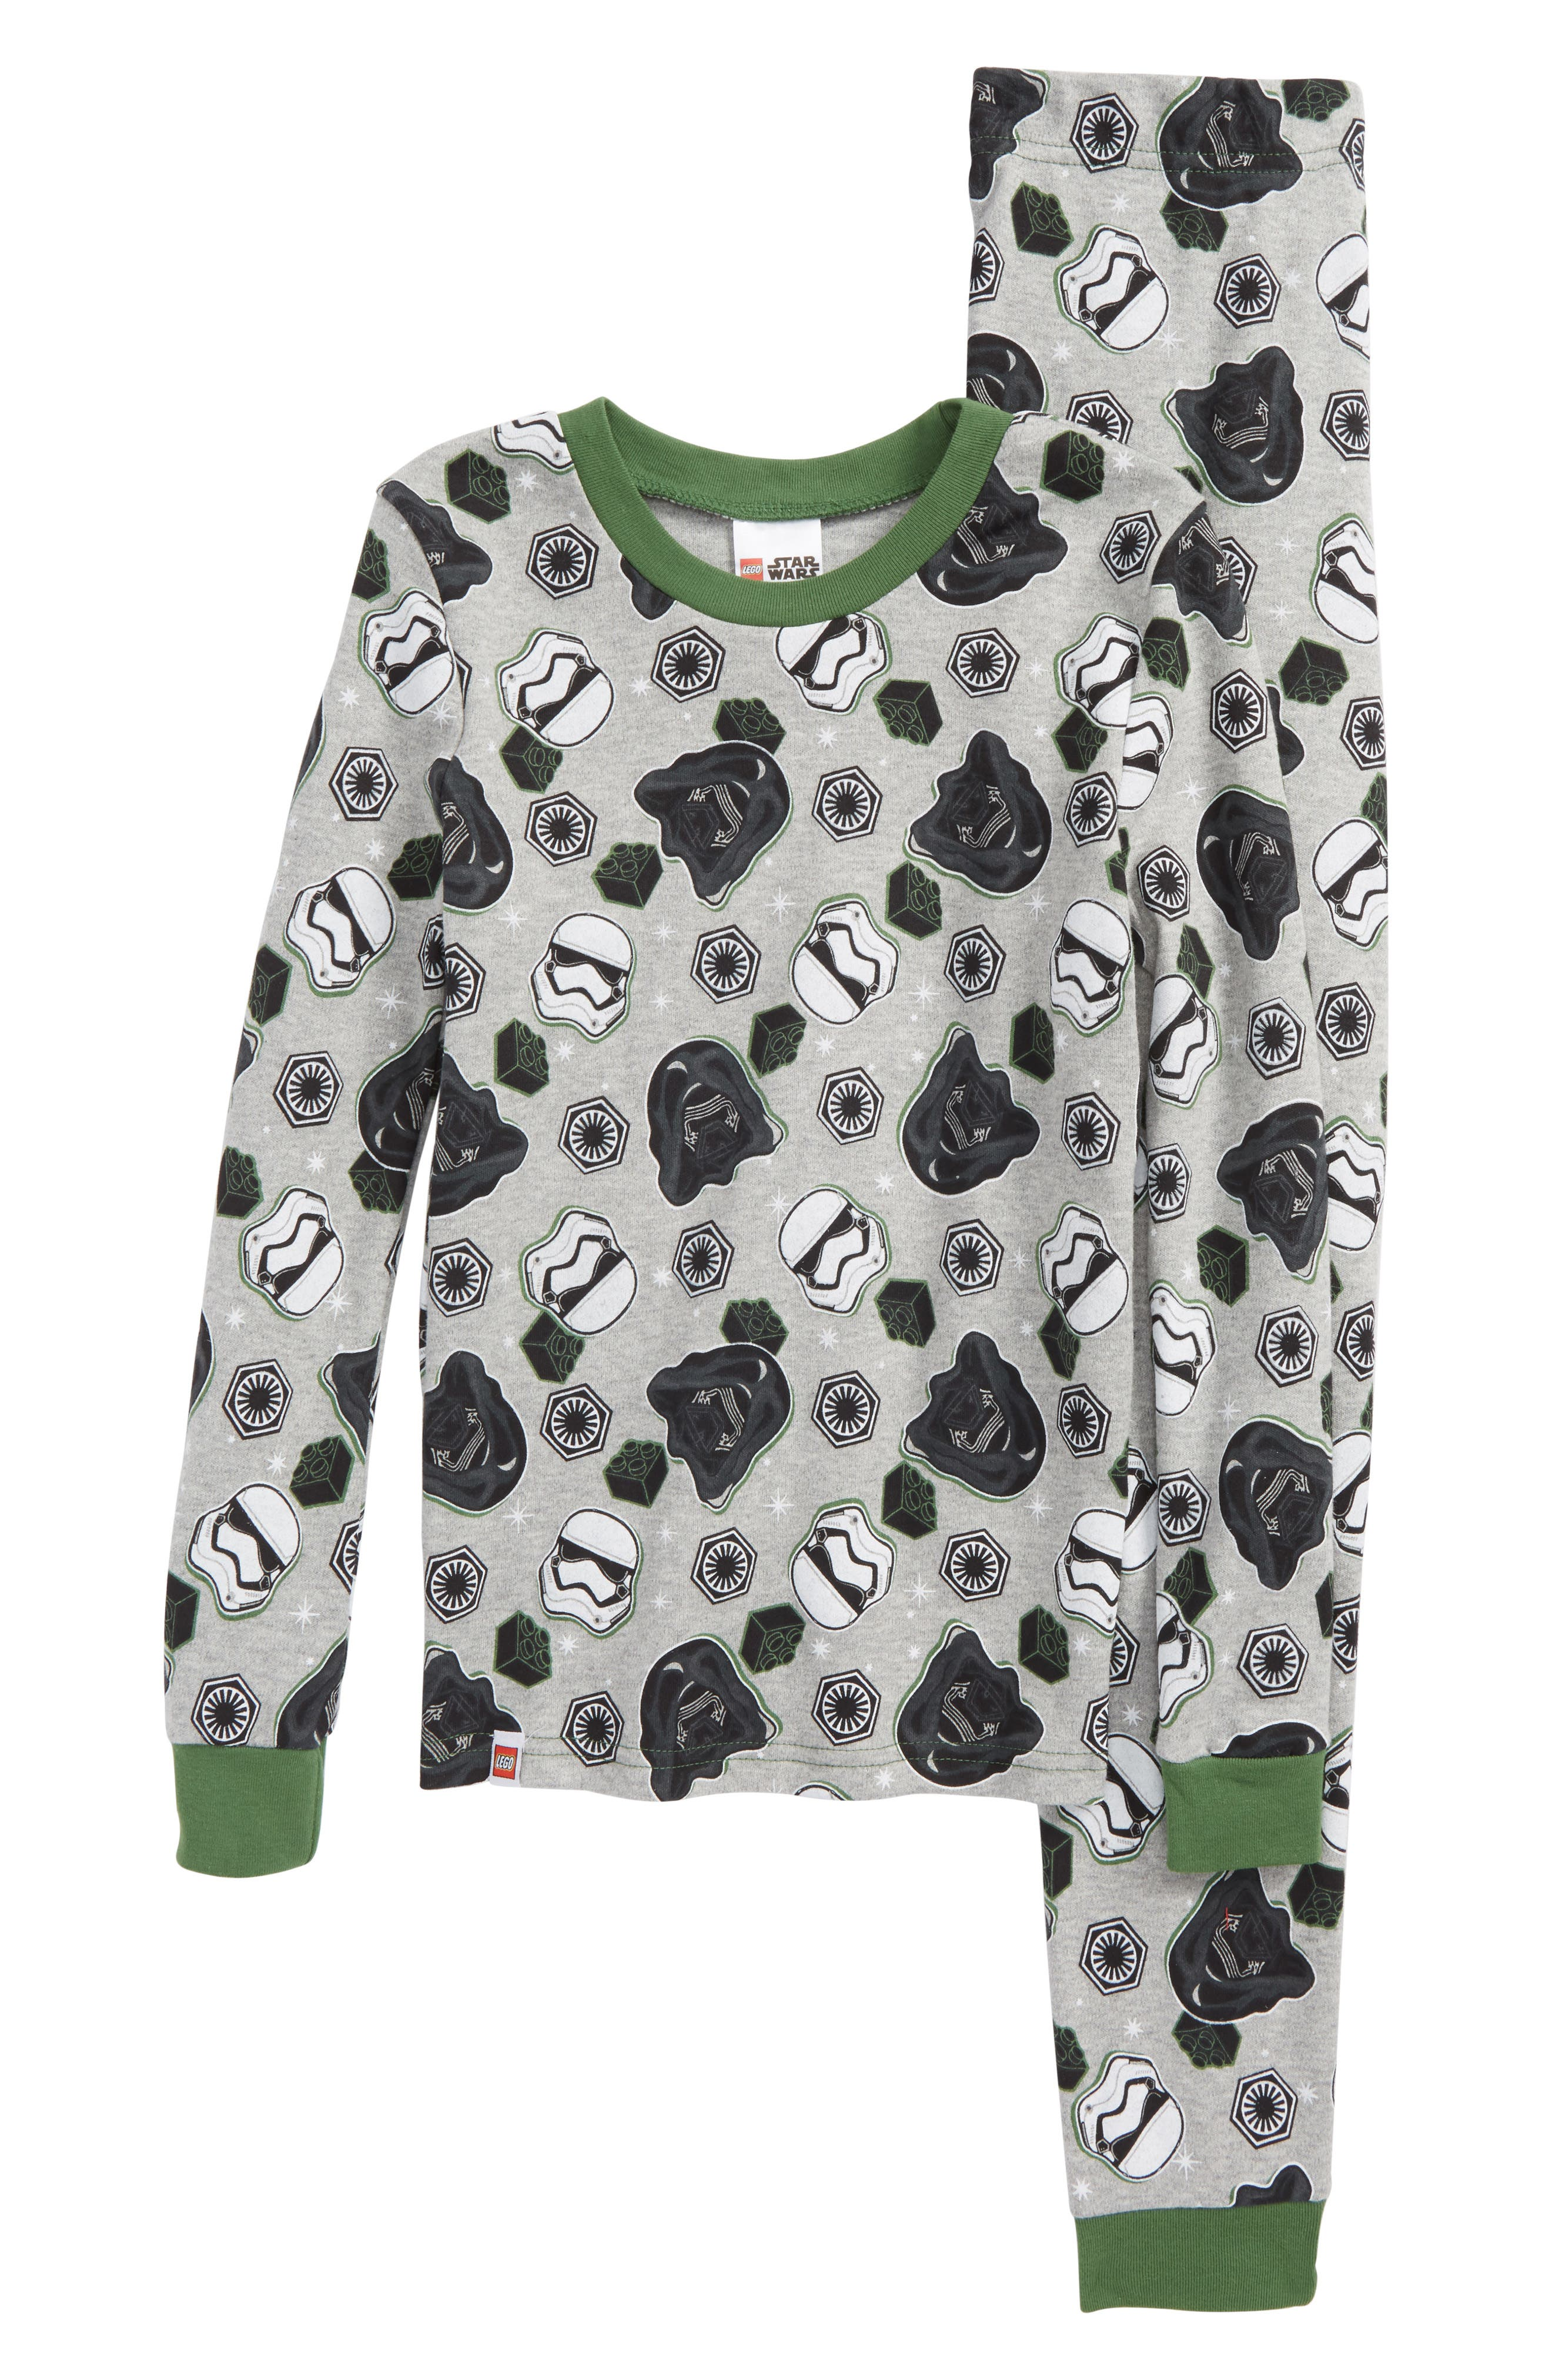 Lego Star Wars<sup>™</sup> Fitted Two-Piece Pajamas Set,                             Main thumbnail 1, color,                             061